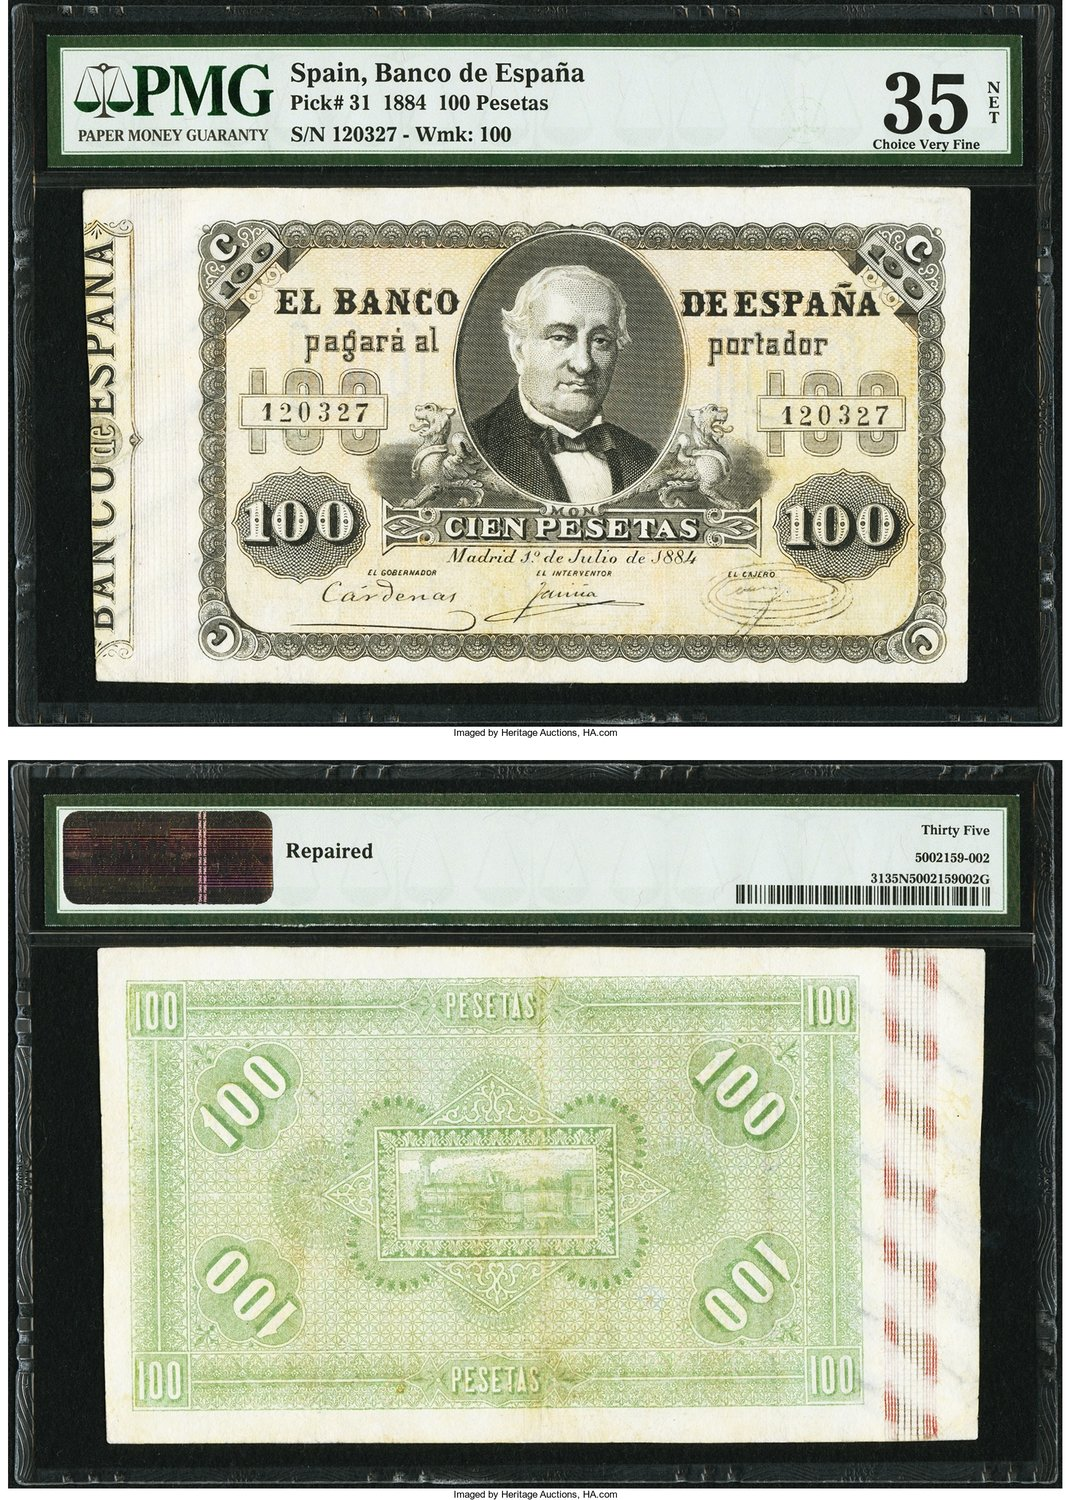 World Currency Spain Banco De Espana 100 Pesetas 1 7 1884 Pick 31 This Note From The Second Issue Of